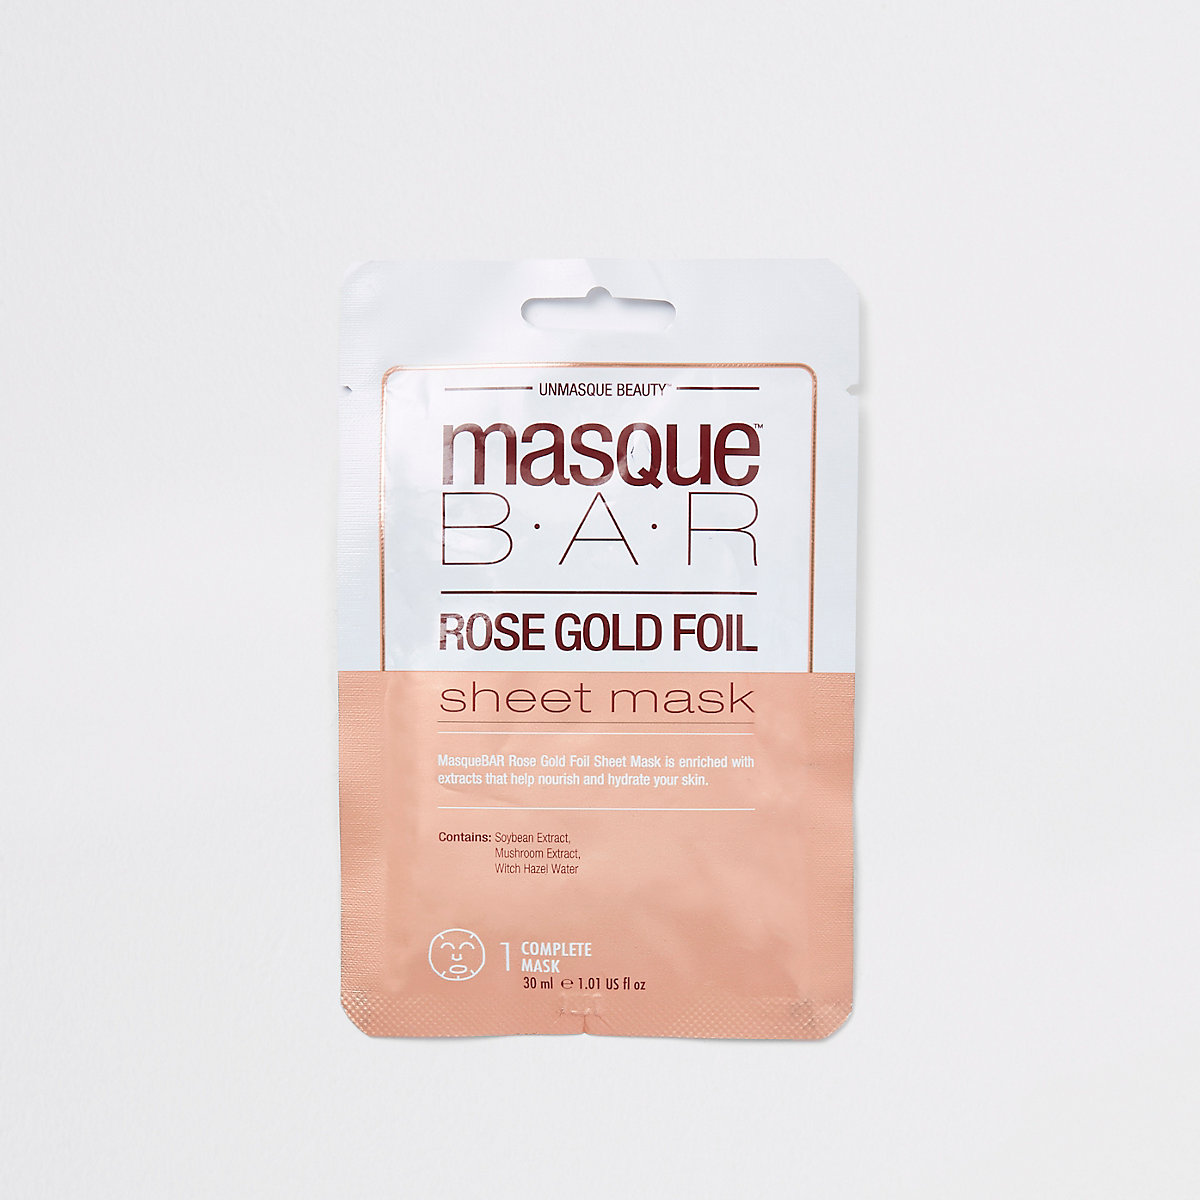 Masque Bar rose gold foil sheet face mask